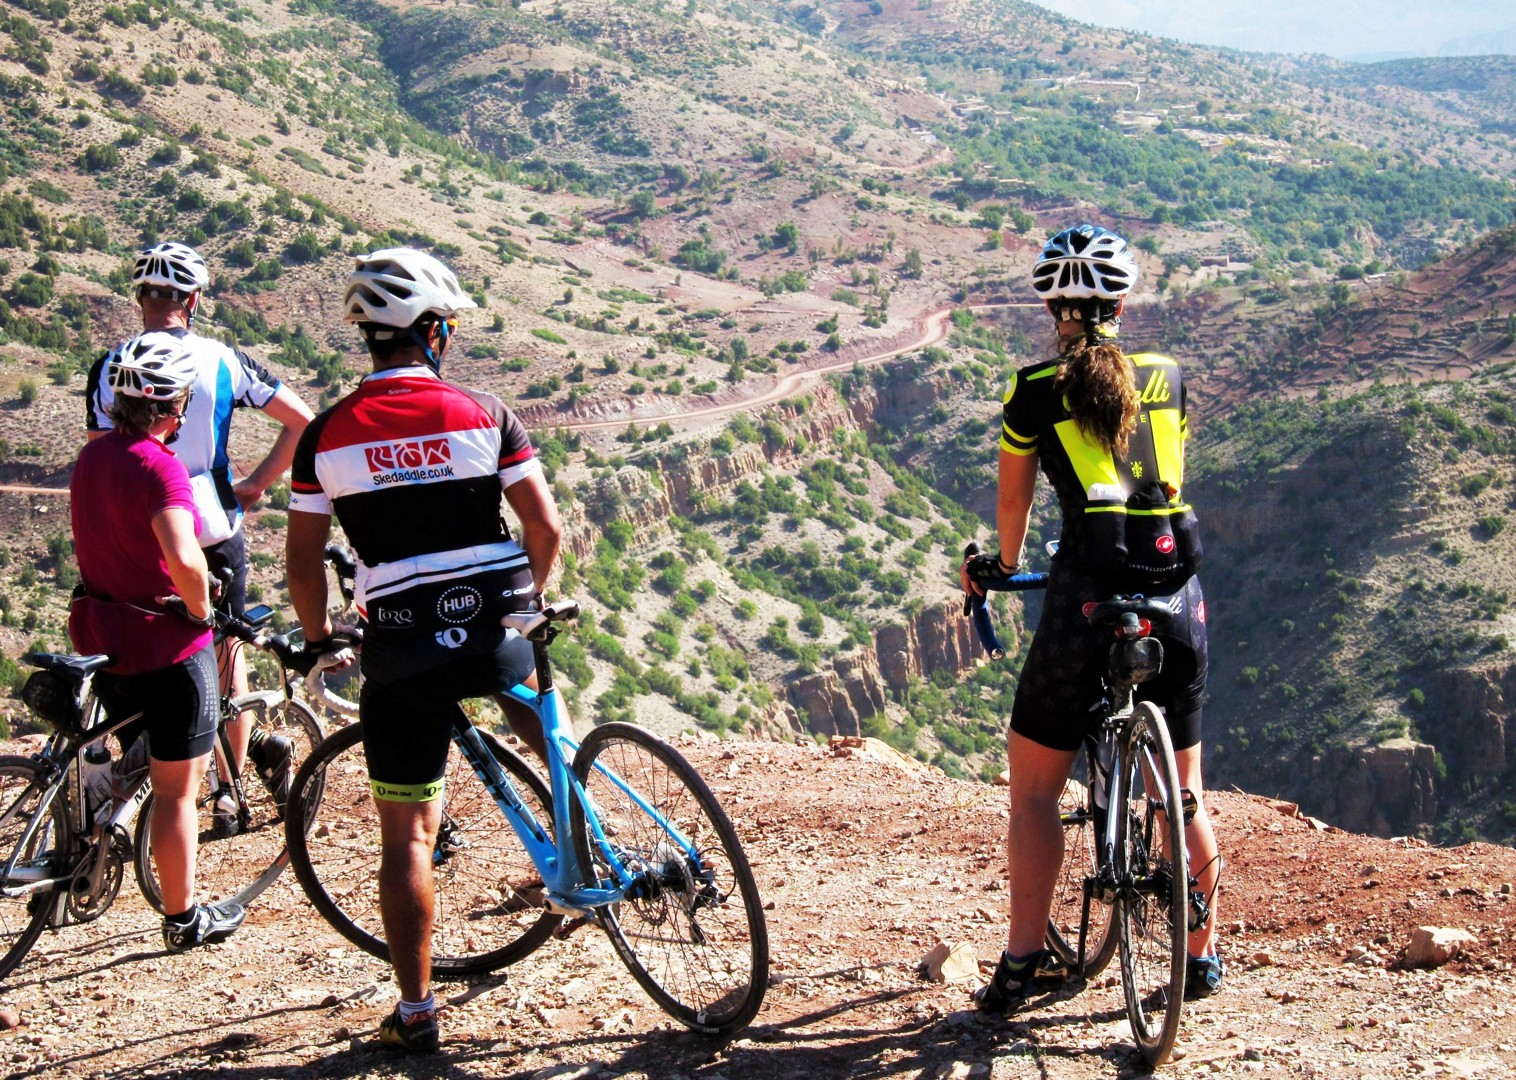 saddle-skedaddle-morocco-cycling-holiday-road-atlas.jpg - Morocco - Road Atlas - Road Cycling